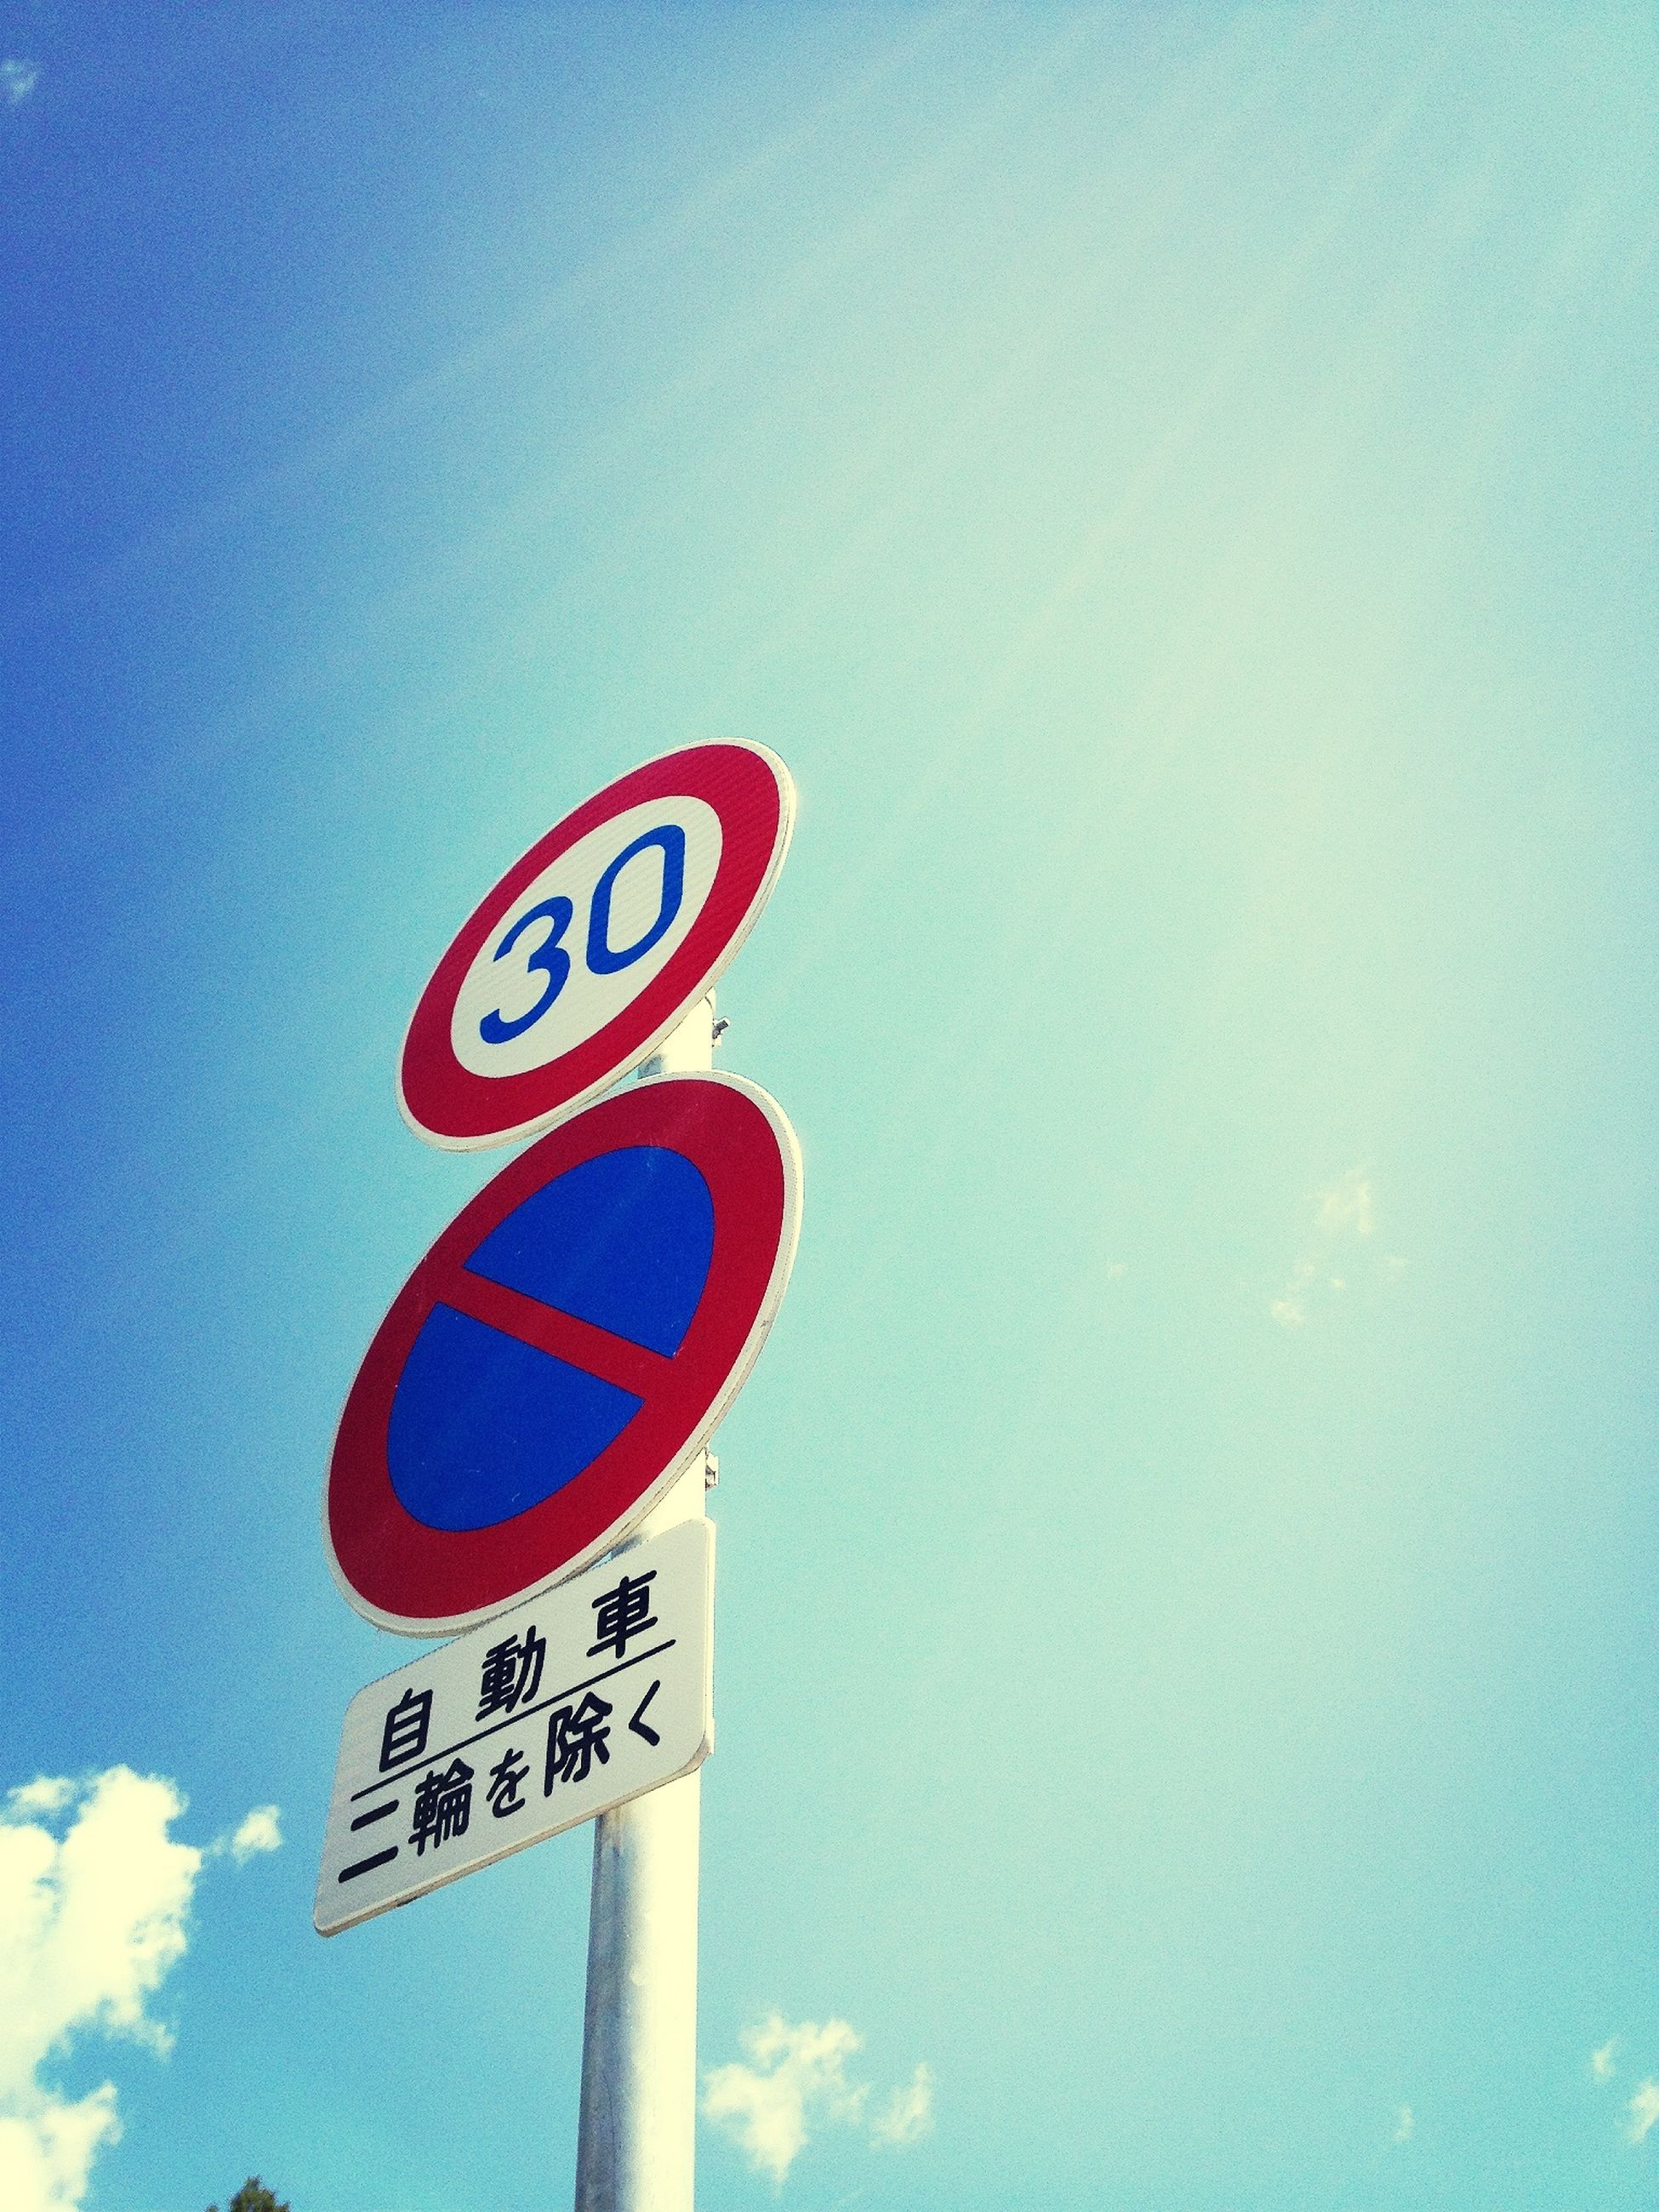 text, communication, western script, guidance, sign, road sign, information sign, blue, information, capital letter, warning sign, low angle view, pole, direction, arrow symbol, clear sky, directional sign, non-western script, sky, day